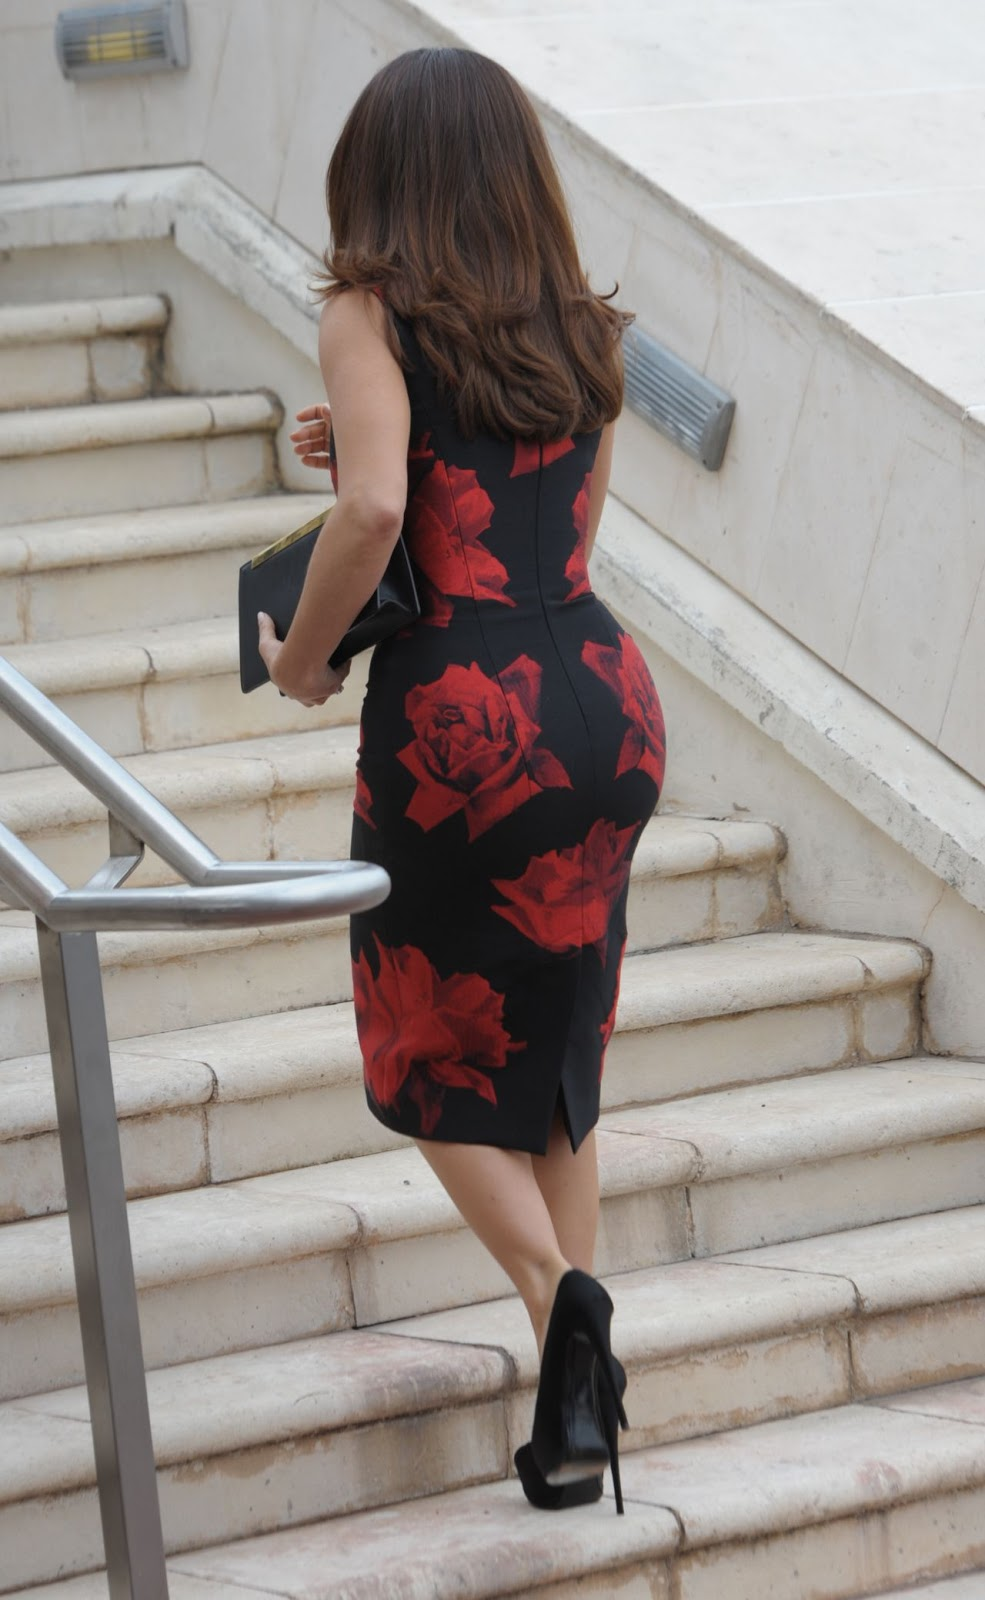 Salma Hayek Tale of Tales photocall in Cannes